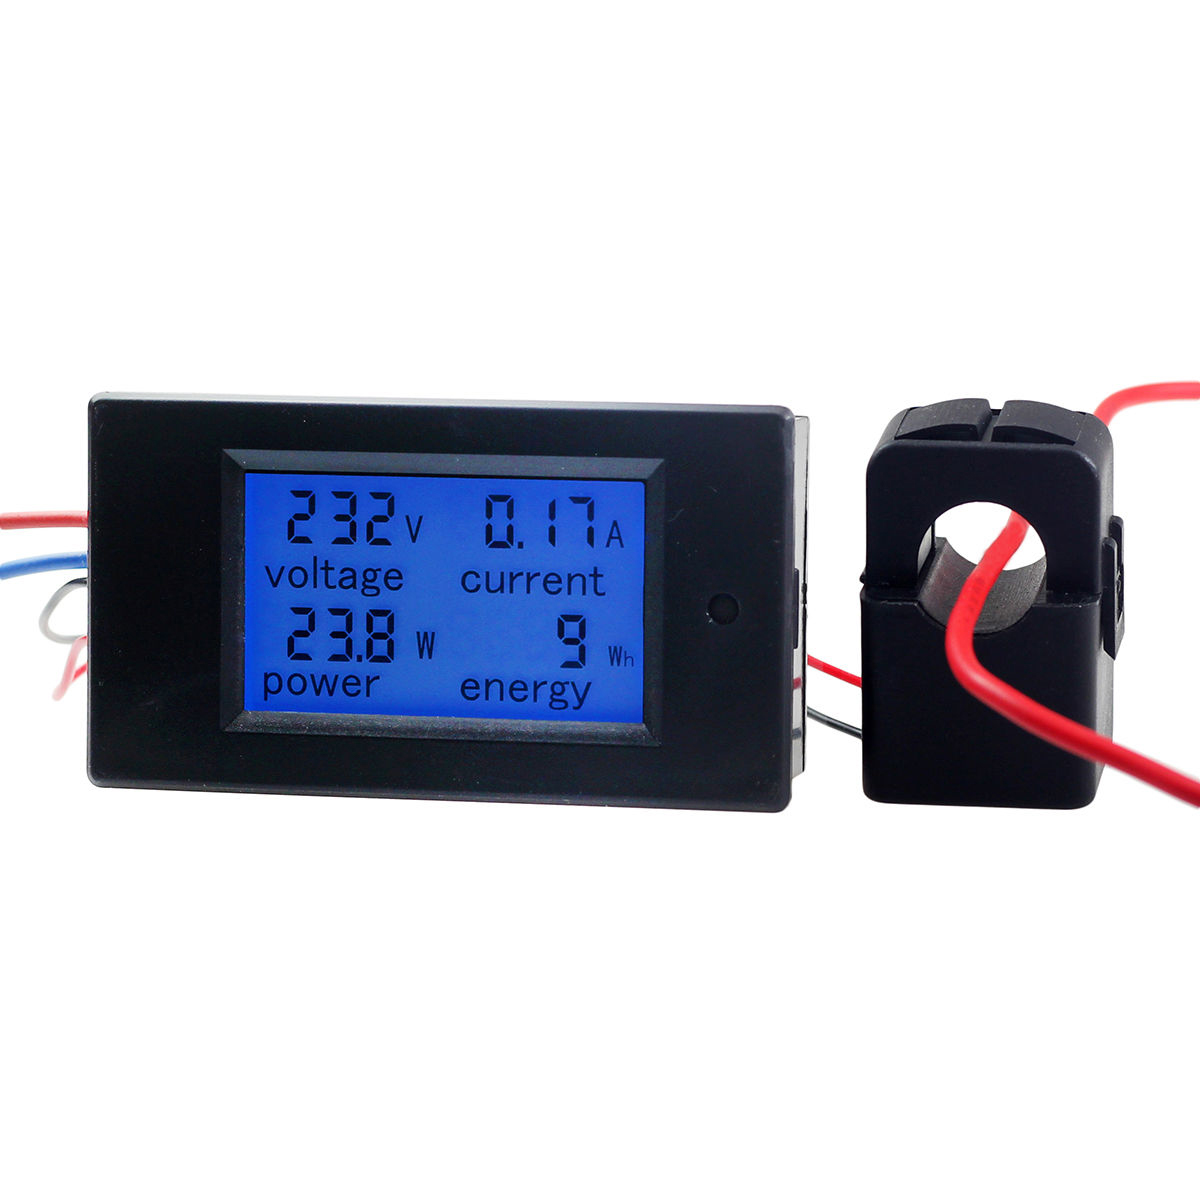 Amp Meter Ct Wiring Diagram | Wiring Liry on ct parts diagram, ct connections diagram, ct body diagram, a residential electric meter diagram, www.ct coil circuit diagram, electric meter installation diagram, ct equipment diagram, ct components diagram,